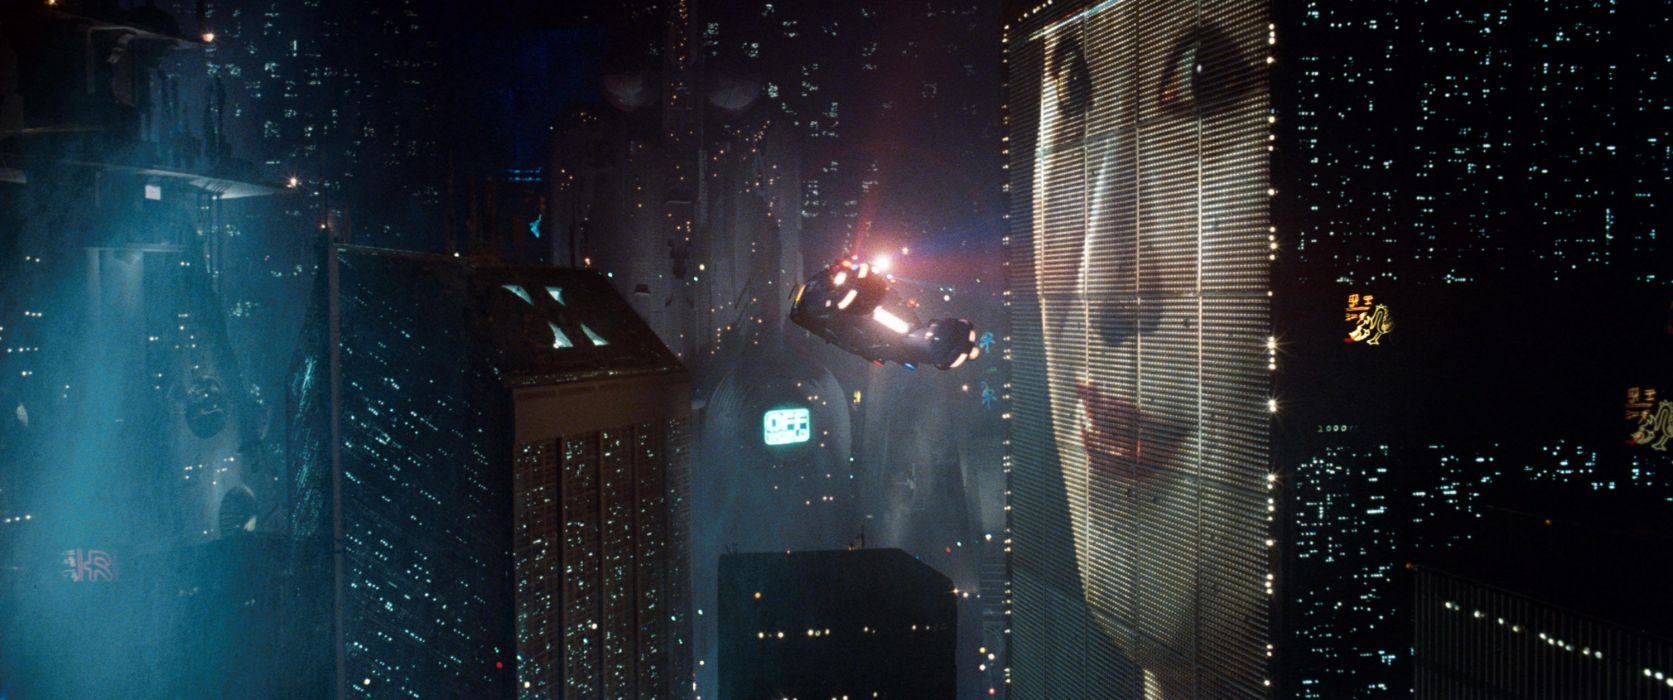 BLADE RUNNER drama sci-Fi thriller action spaceship city    g wallpaper